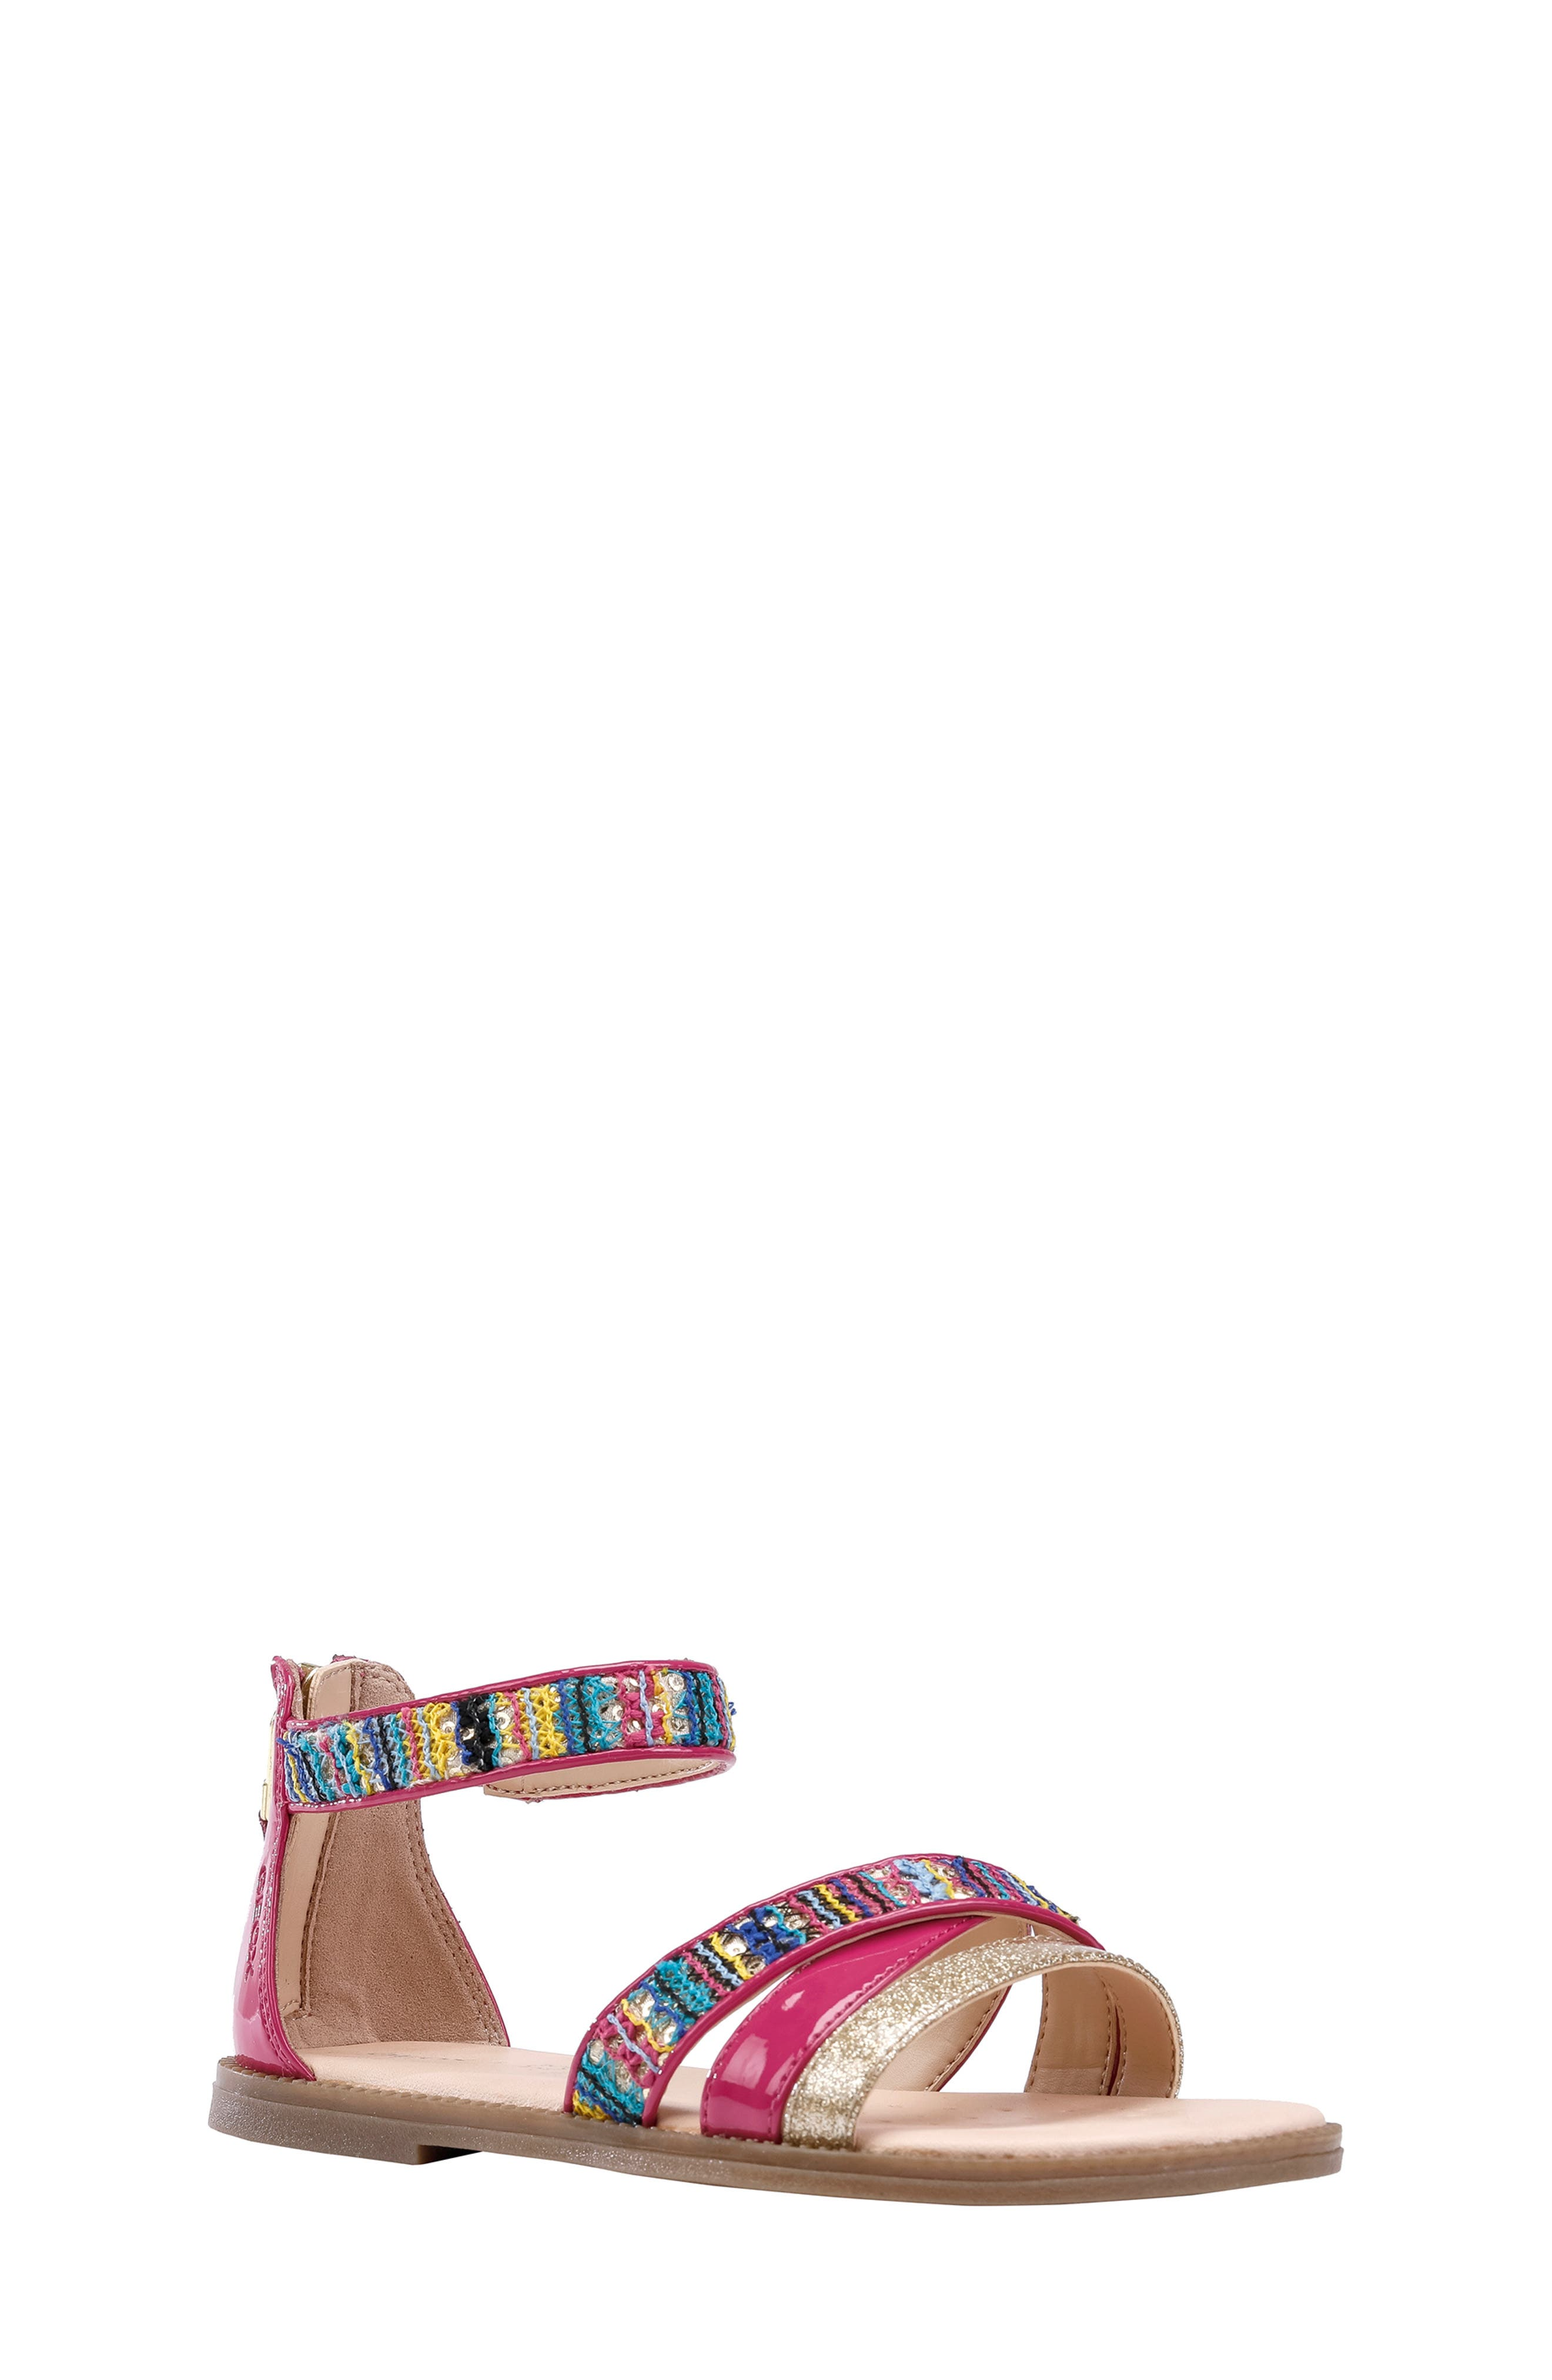 3f4272a3e1db Geox for Kids Pink